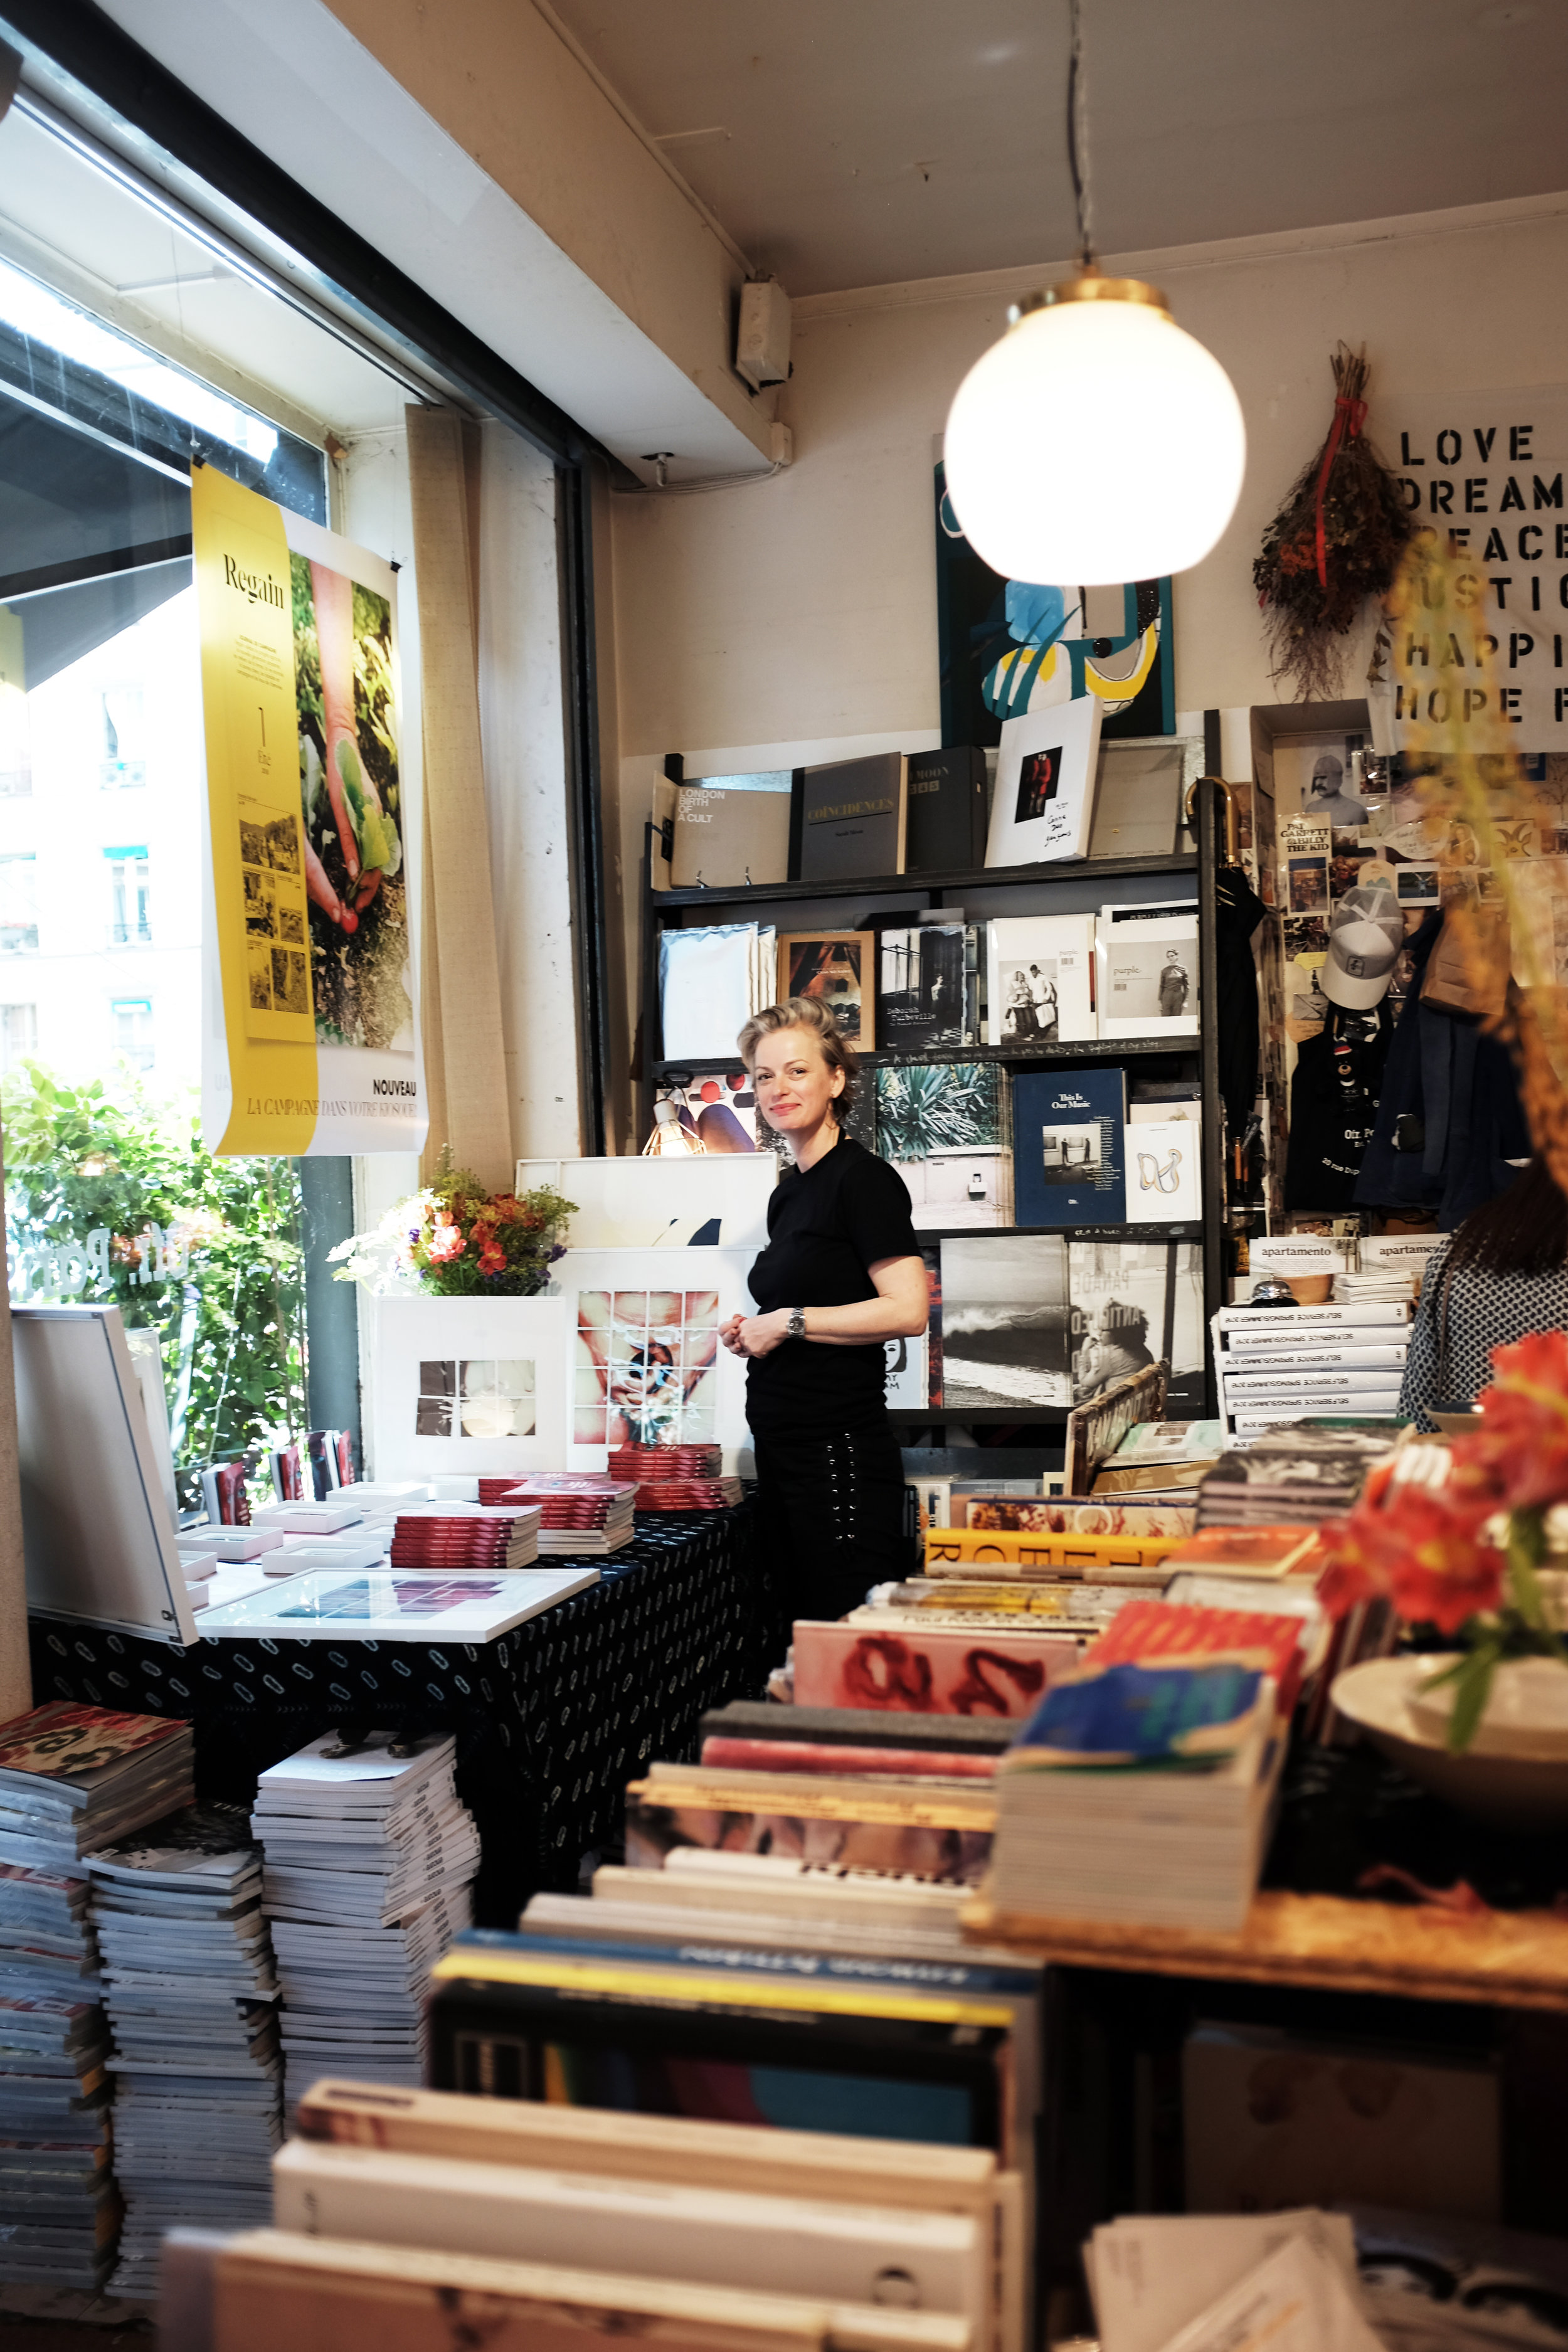 June 21 2018,signature and book release party at OFR,20 Rue Dupetit-Thouars, 75003 Paris, France